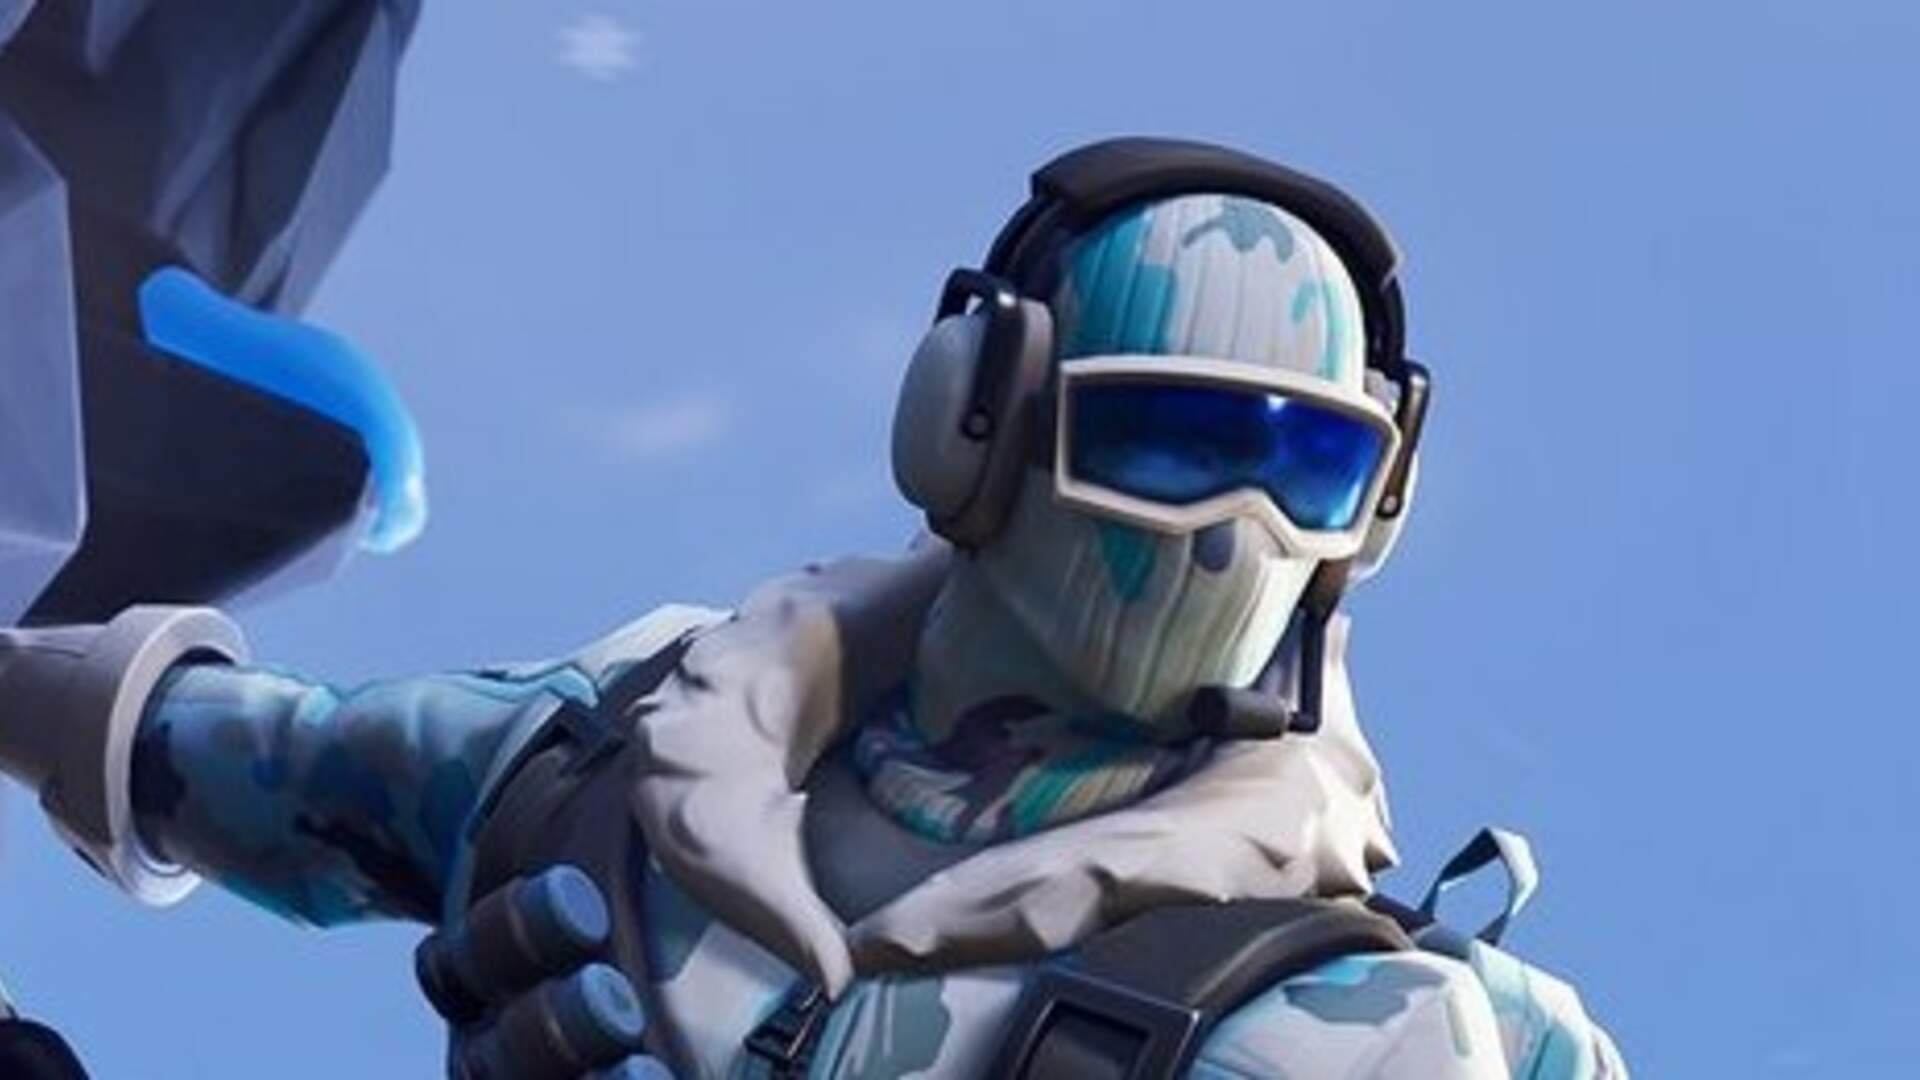 Fortnite v7.10 Patch Notes Are Here, and There's a New Holiday LTM